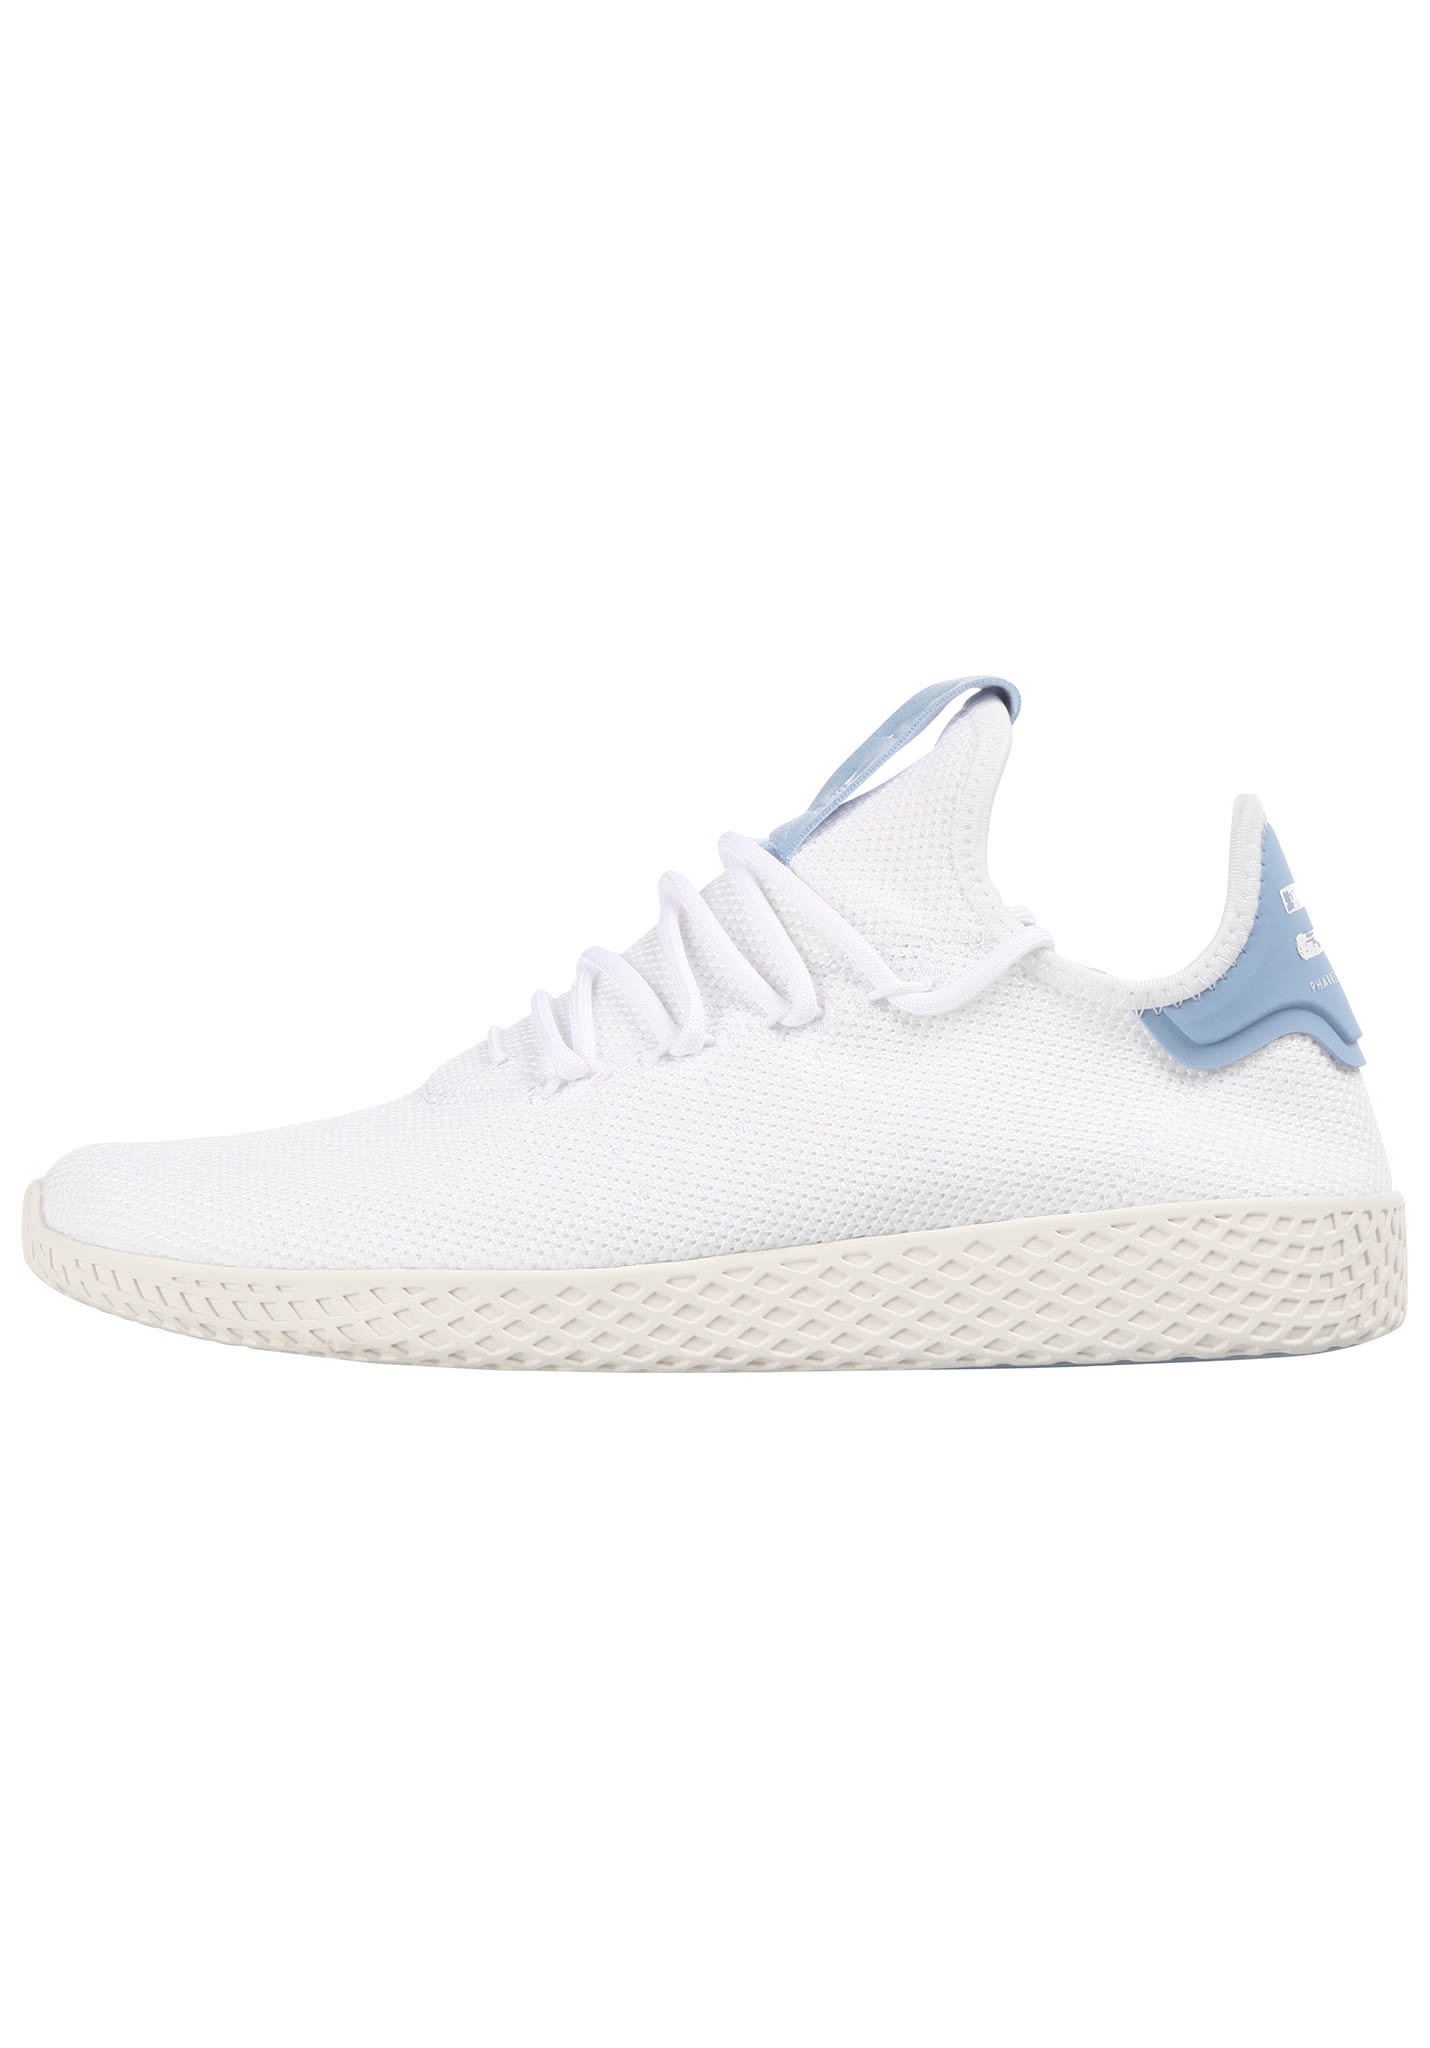 Pharrell Per Adidas Uomo Bianco Tennis Williams Hu Sneaker